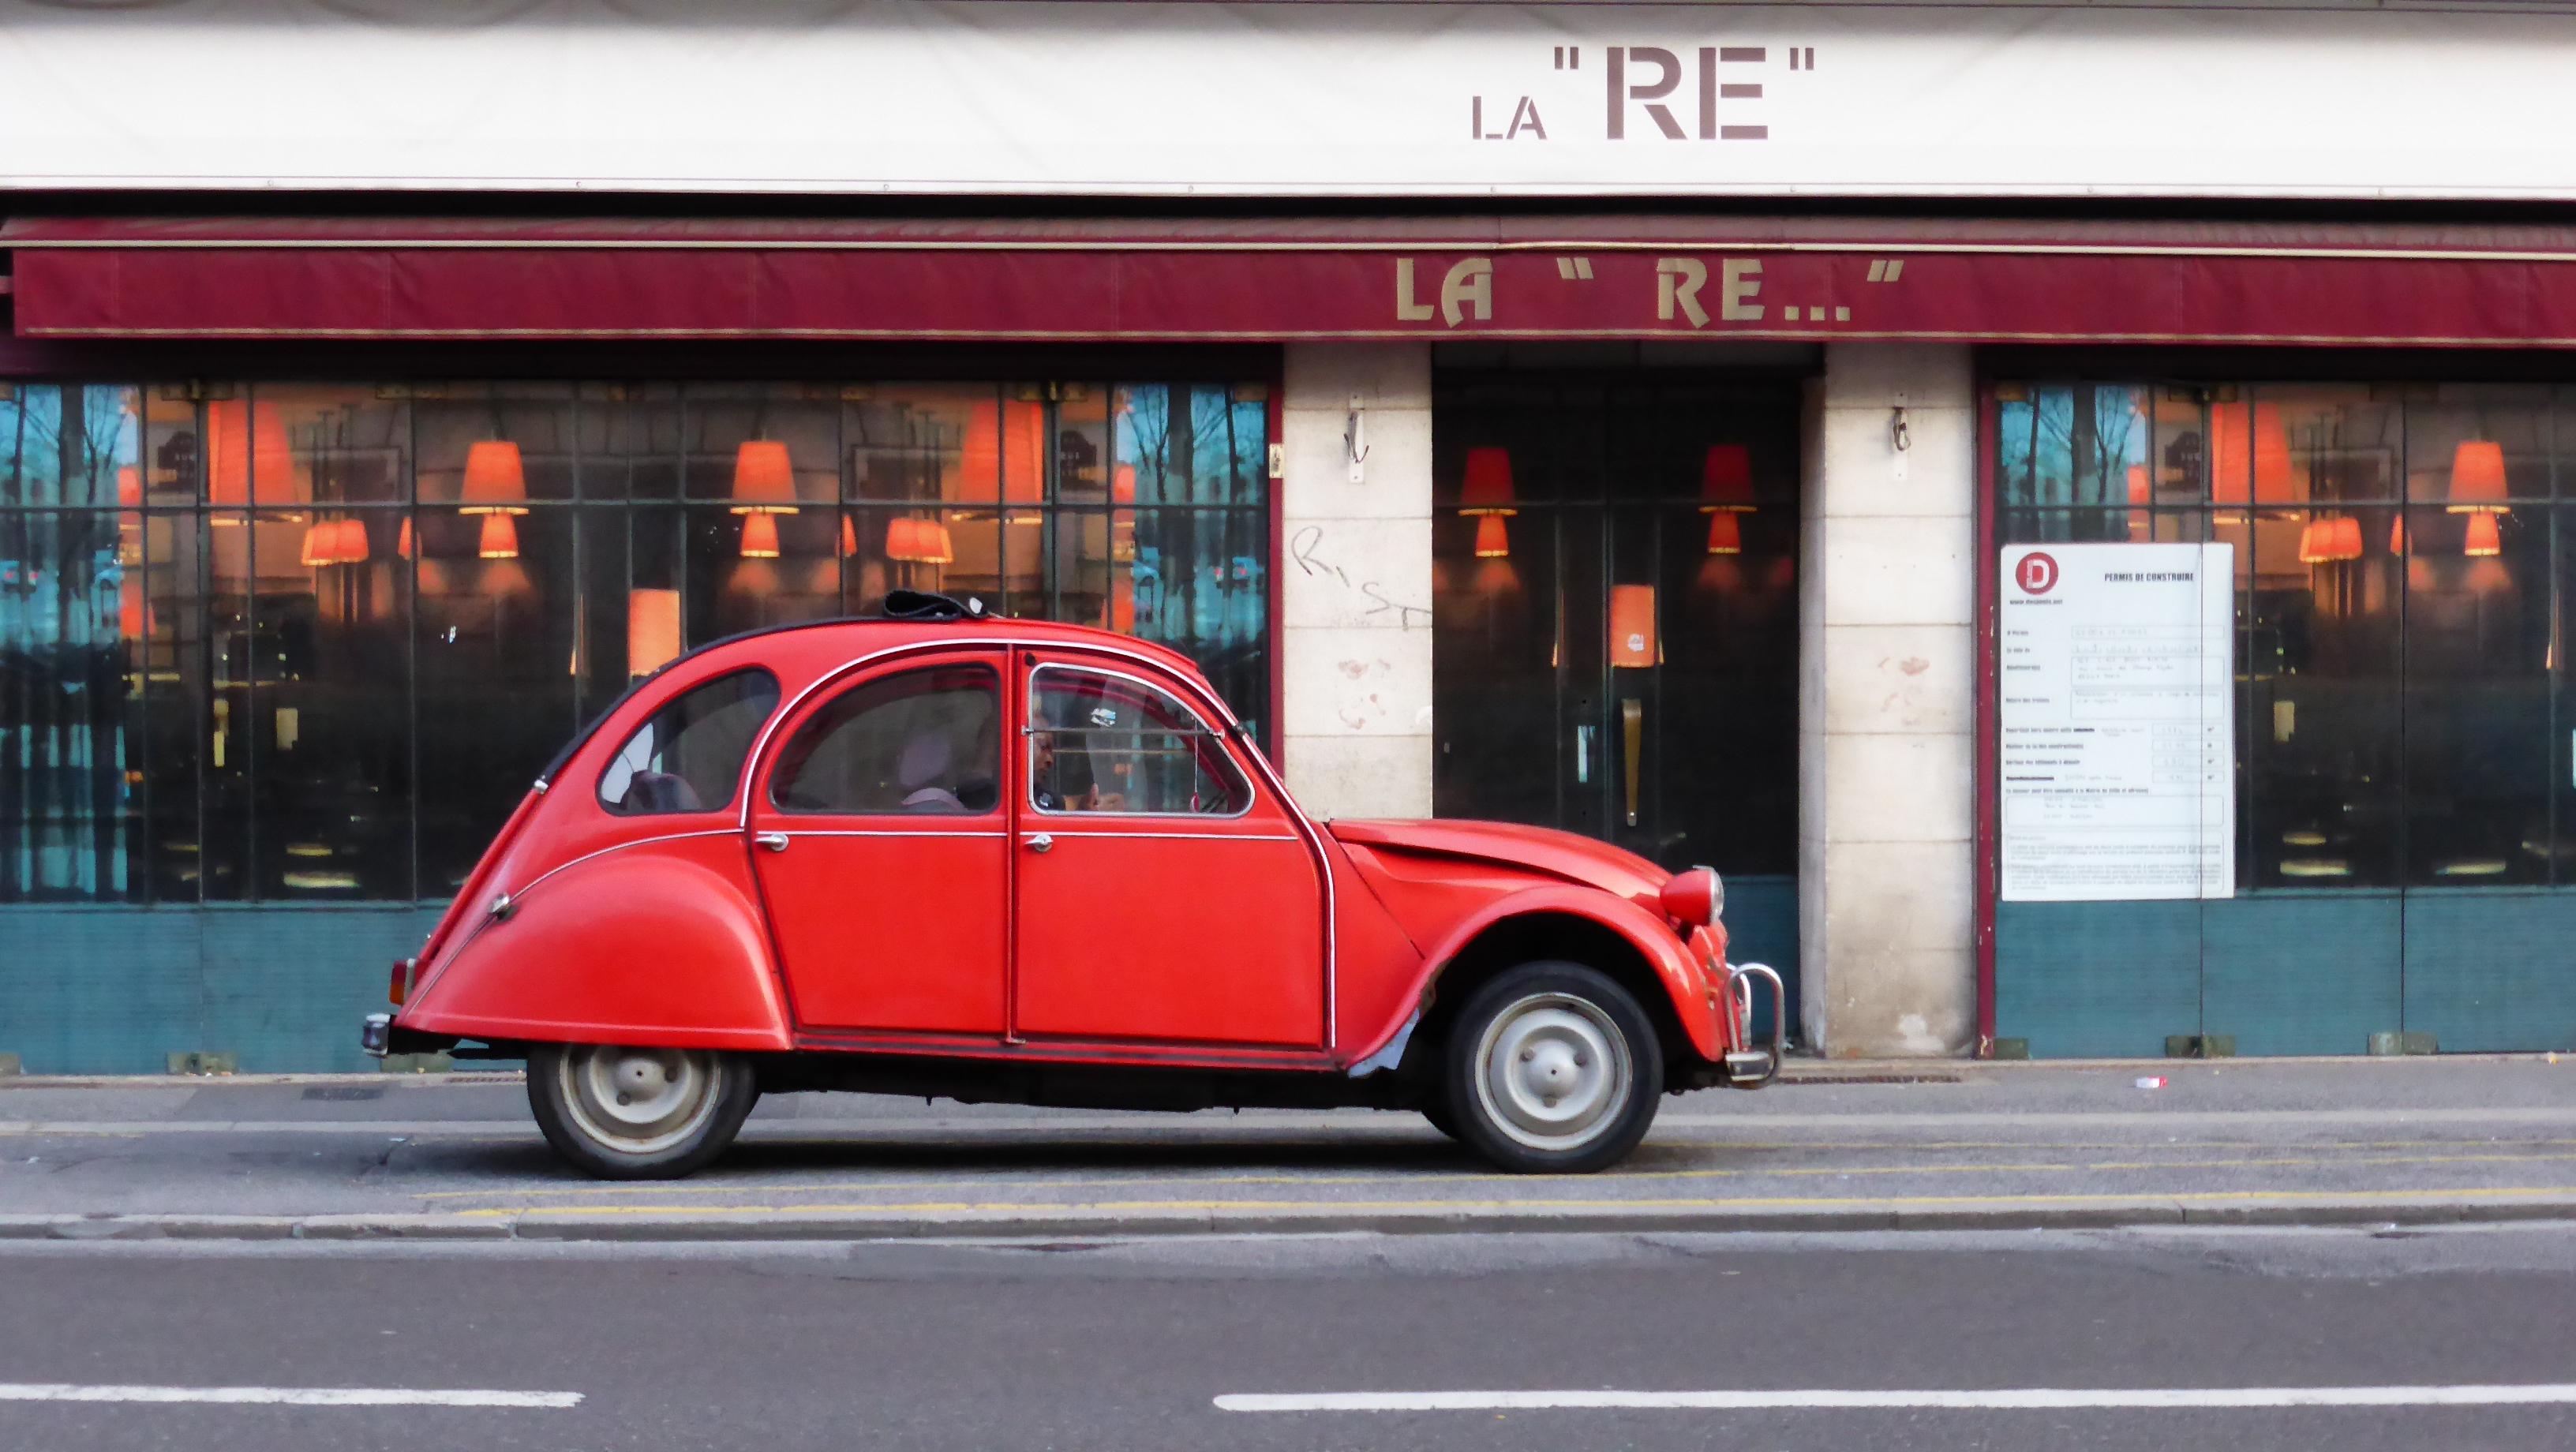 Red-Car-in-Alencon